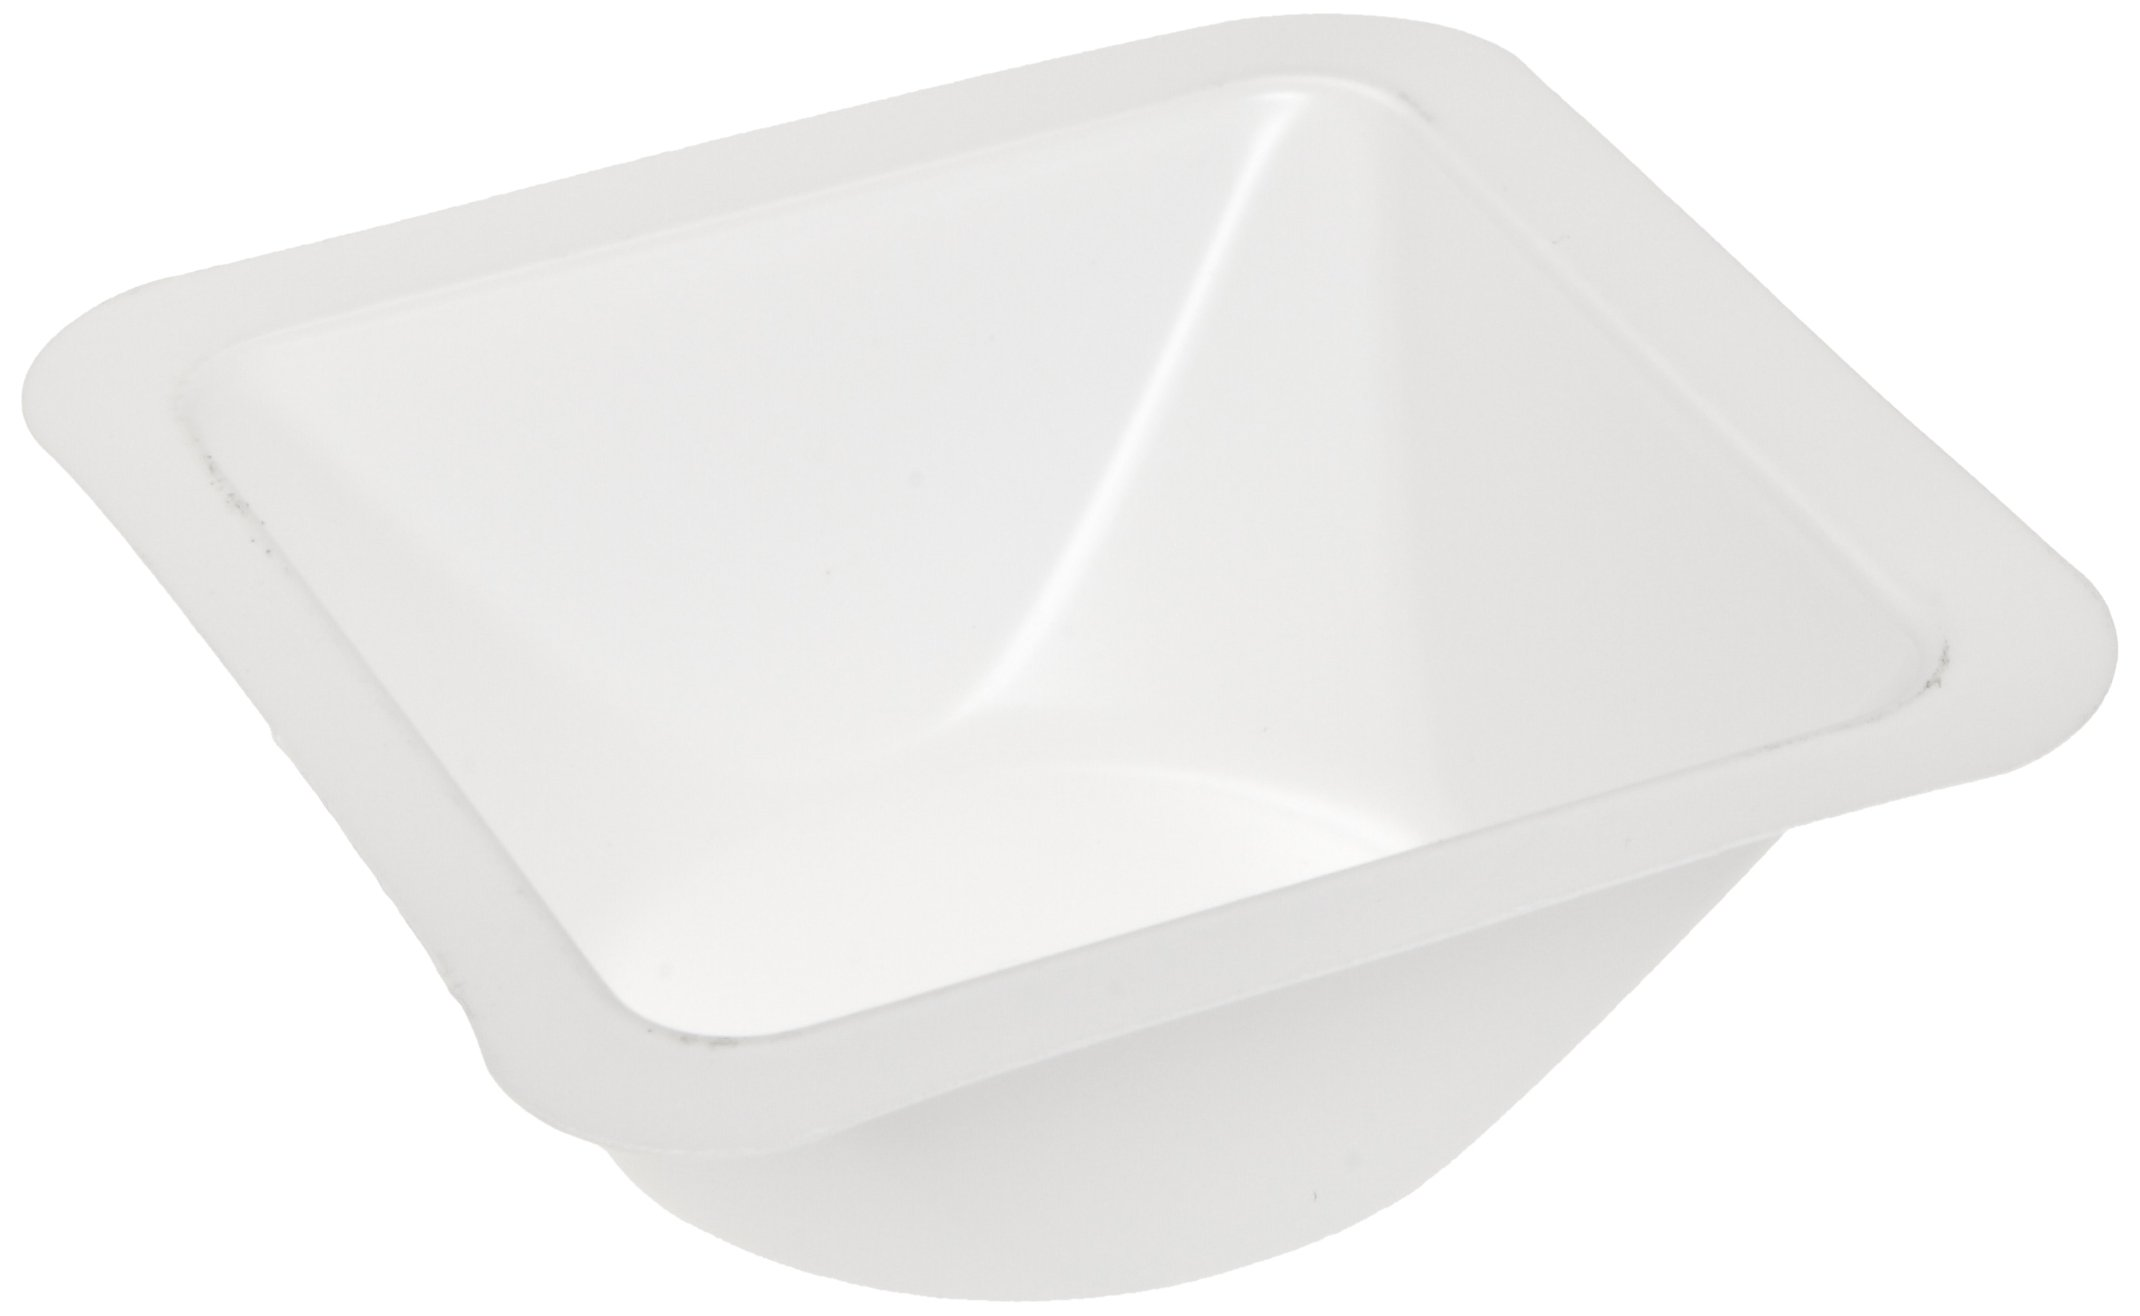 Heathrow Scientific HS1420A Standard Weighing Boat, Polystyrene, Small, 46 mm Length x 46 mm Width x 8 mm Depth, White (Pack of 500) by Heathrow Scientific